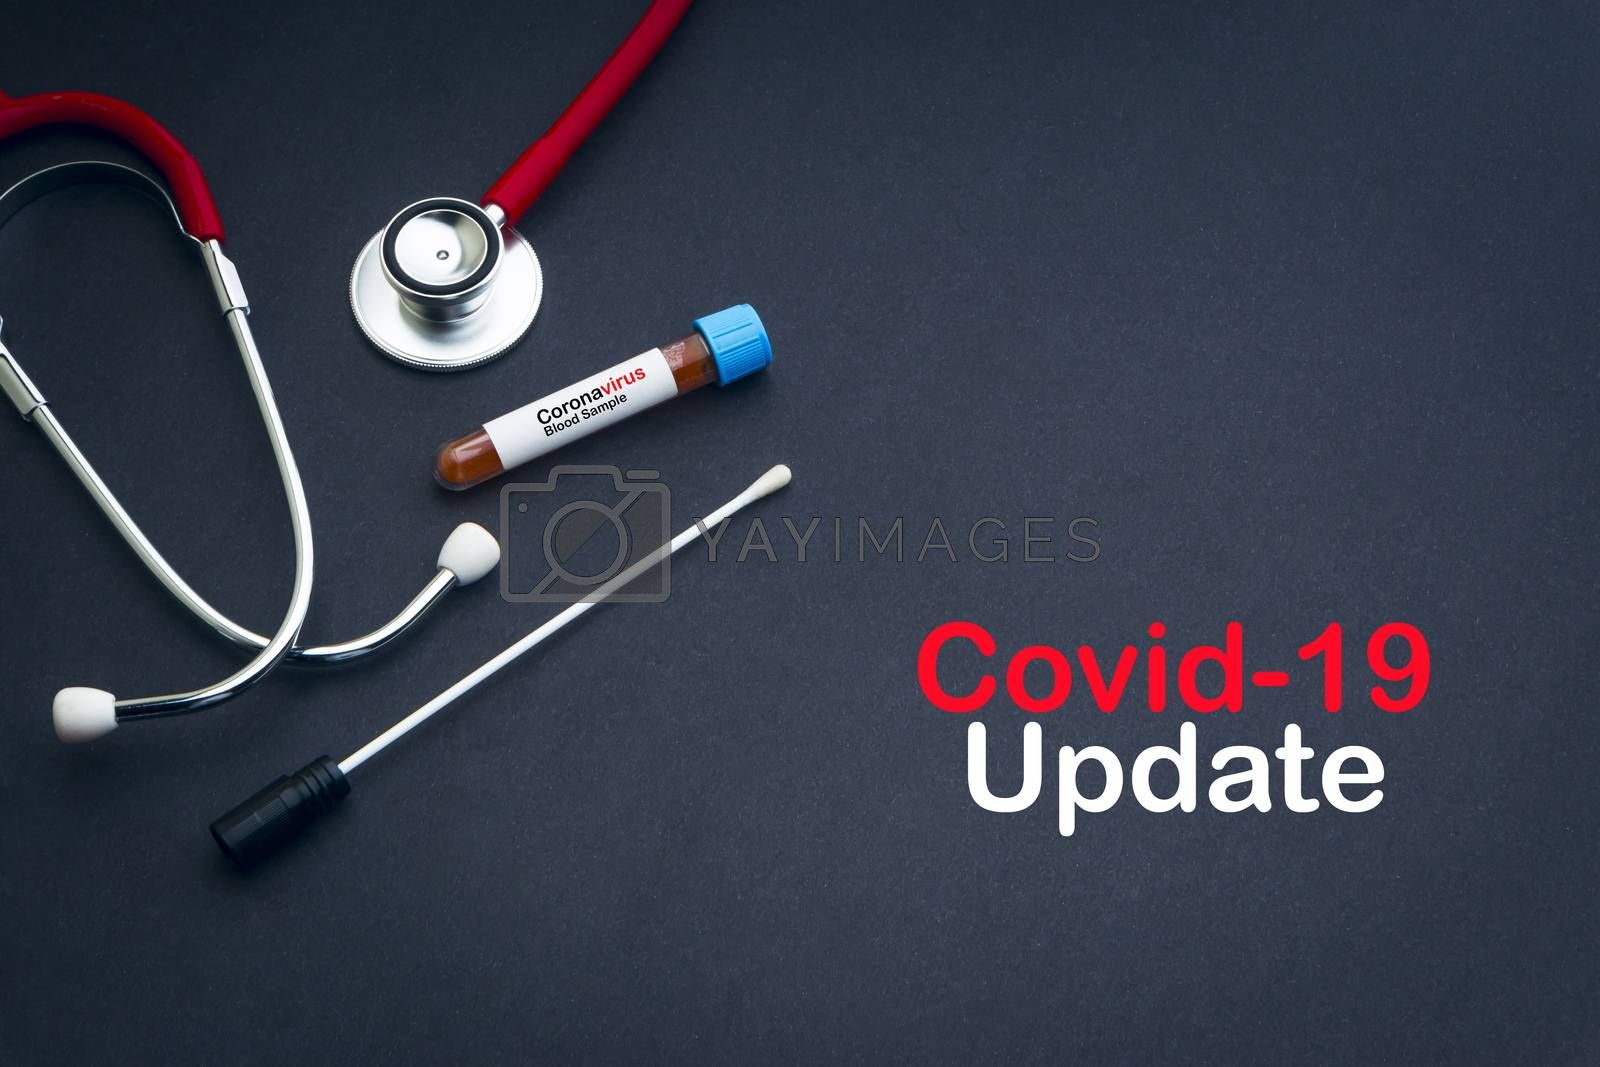 COVID-19 UPDATE text with stethoscope, blood sample vacuum tube and medical swabs on black background. Covid -19 or Coronavirus Concept